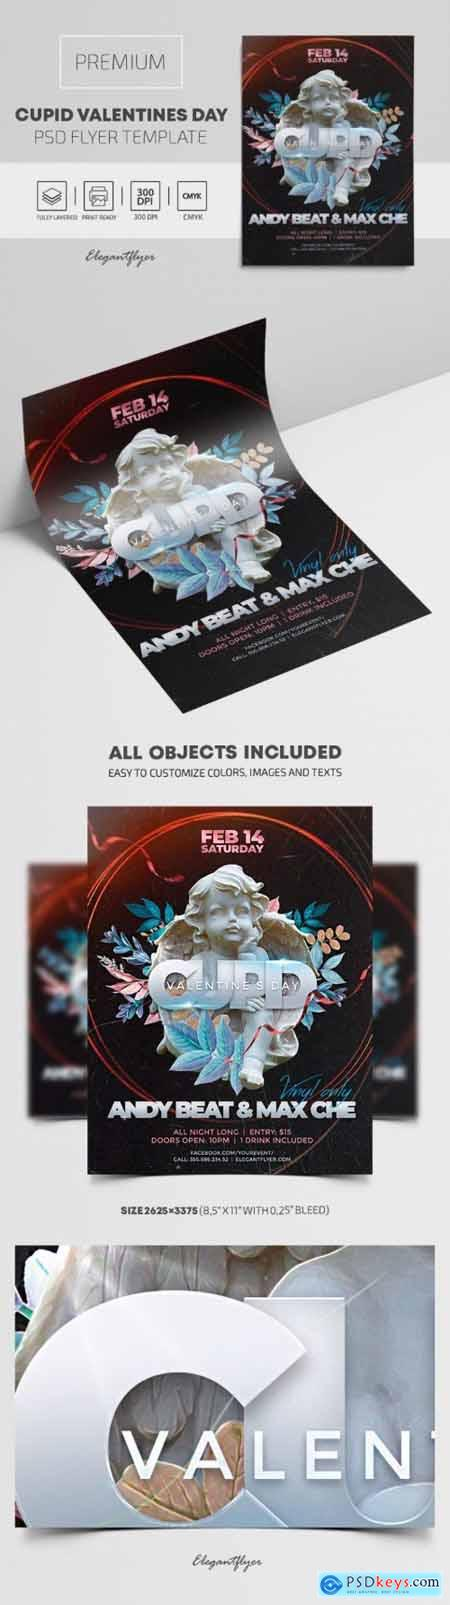 Cupid Valentines Day – Premium PSD Flyer Template